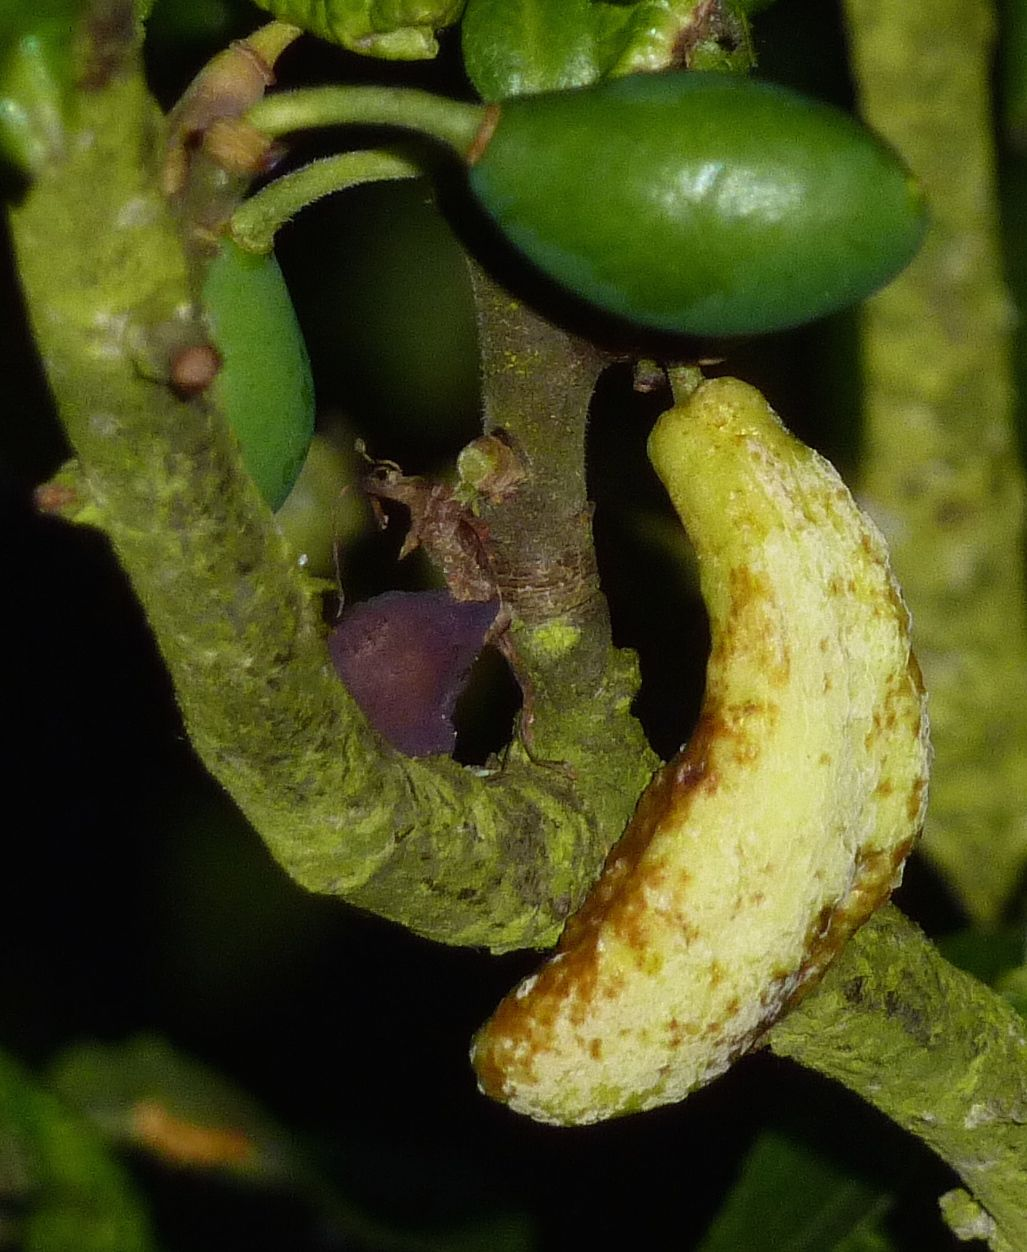 Photo showing the dried, brown deformity of bent banana disease on a damson.